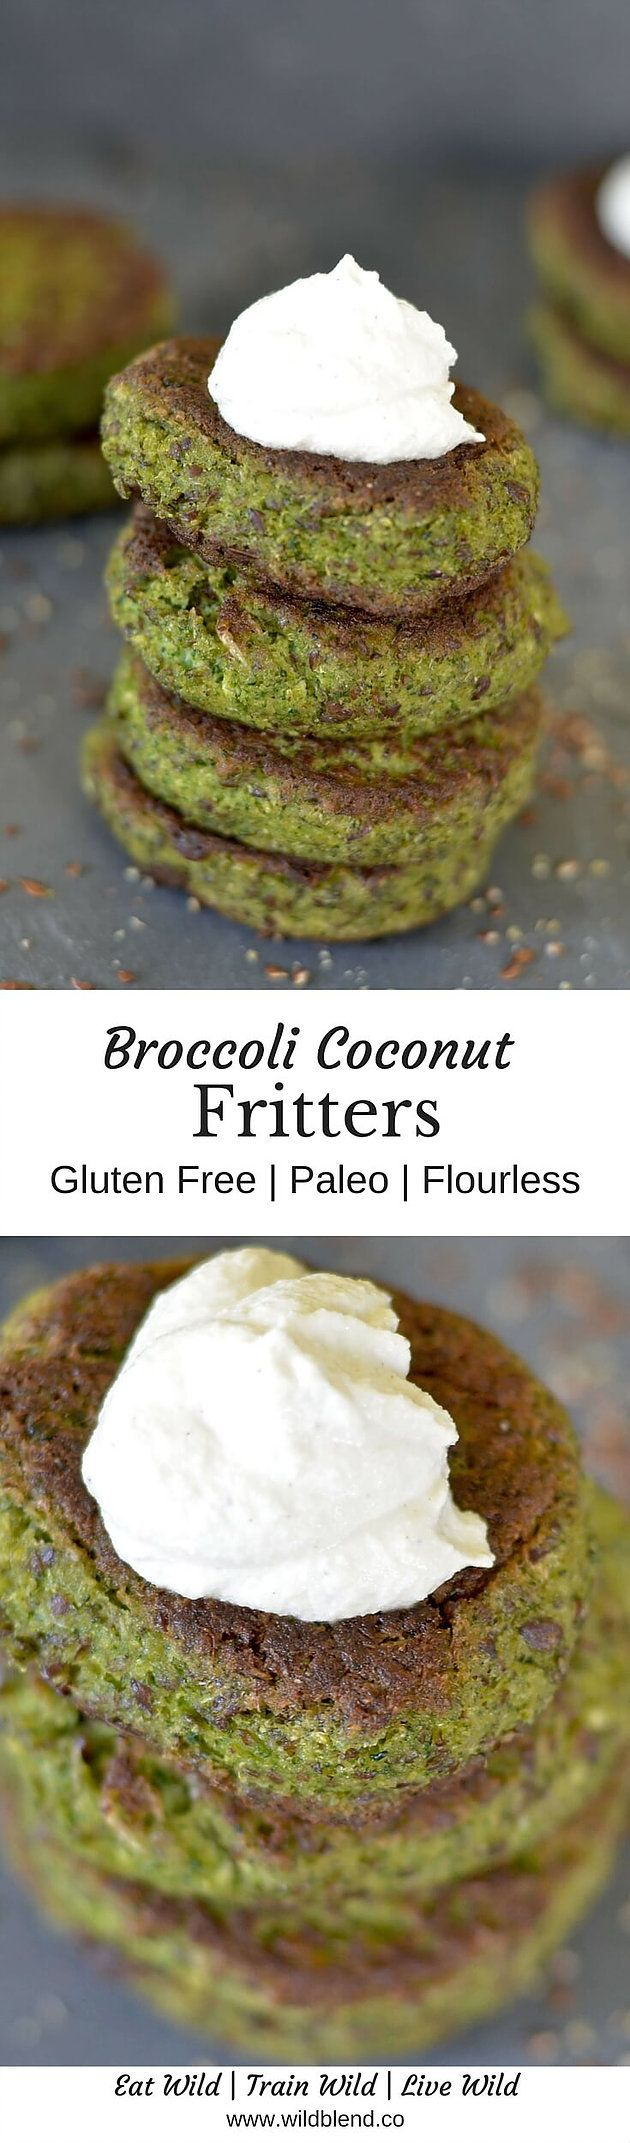 These beautiful broccoli fritters will satisfy even the pickiest of eaters and are an easy way to get more vegetables into your kids. For the full recipe, click here: http://www.wildblend.co/#!Flourless-Broccoli-Coconut-Fritters-Paleo/c1kw6/57860c690cf25aa82d55bcfc